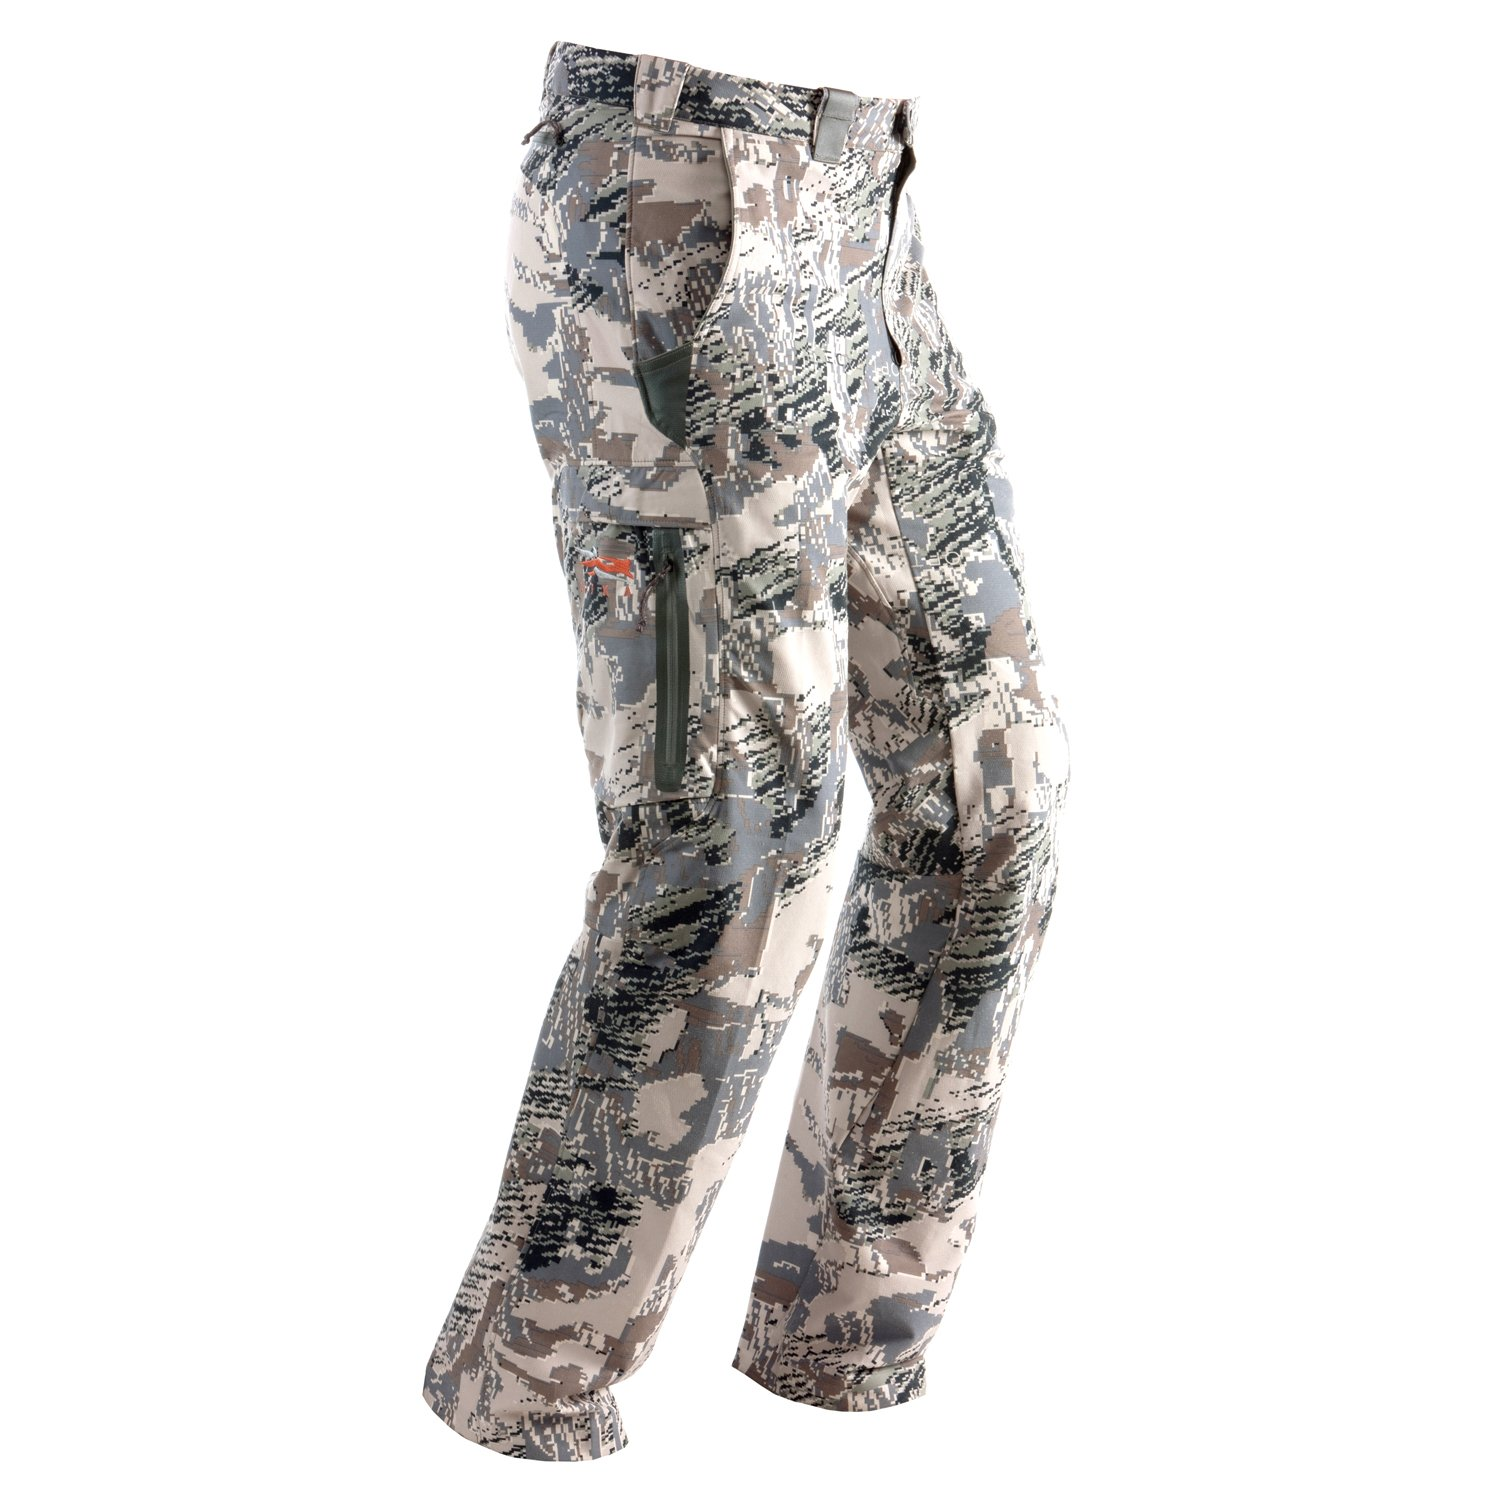 SITKA Gear Ascent Pant Optifade Open Country 32R by SITKA